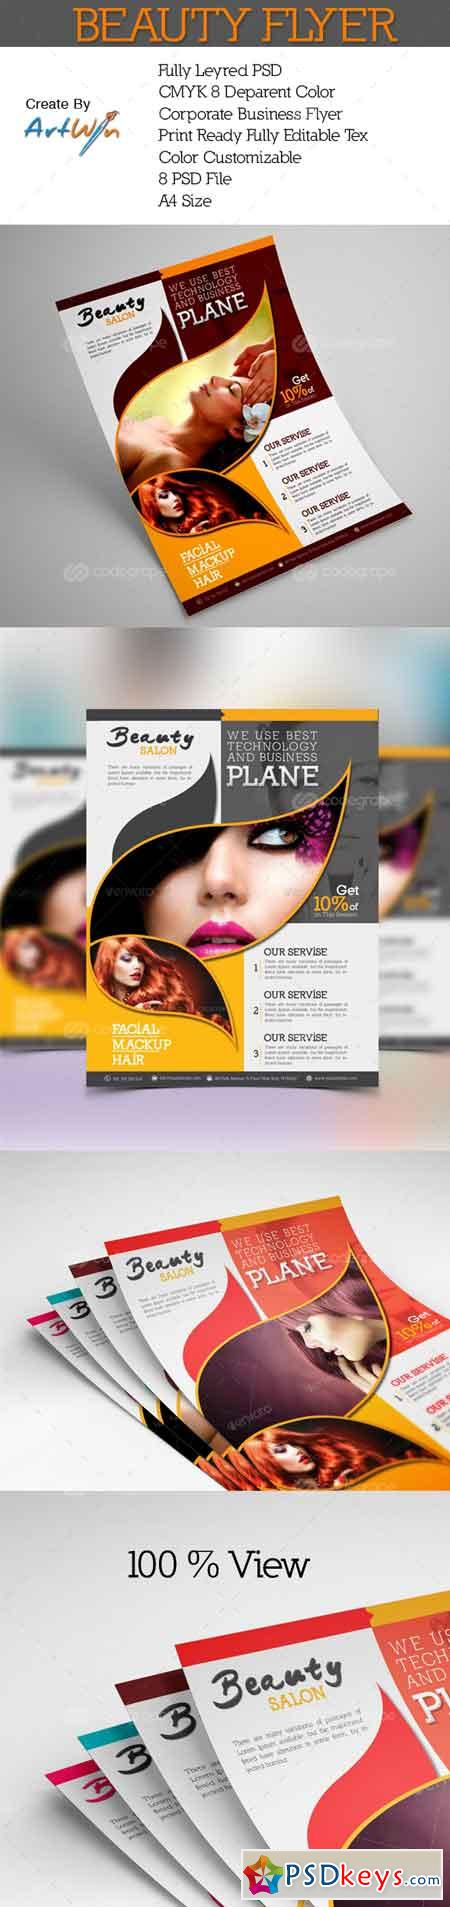 Beauty Parlour Flyer 6736